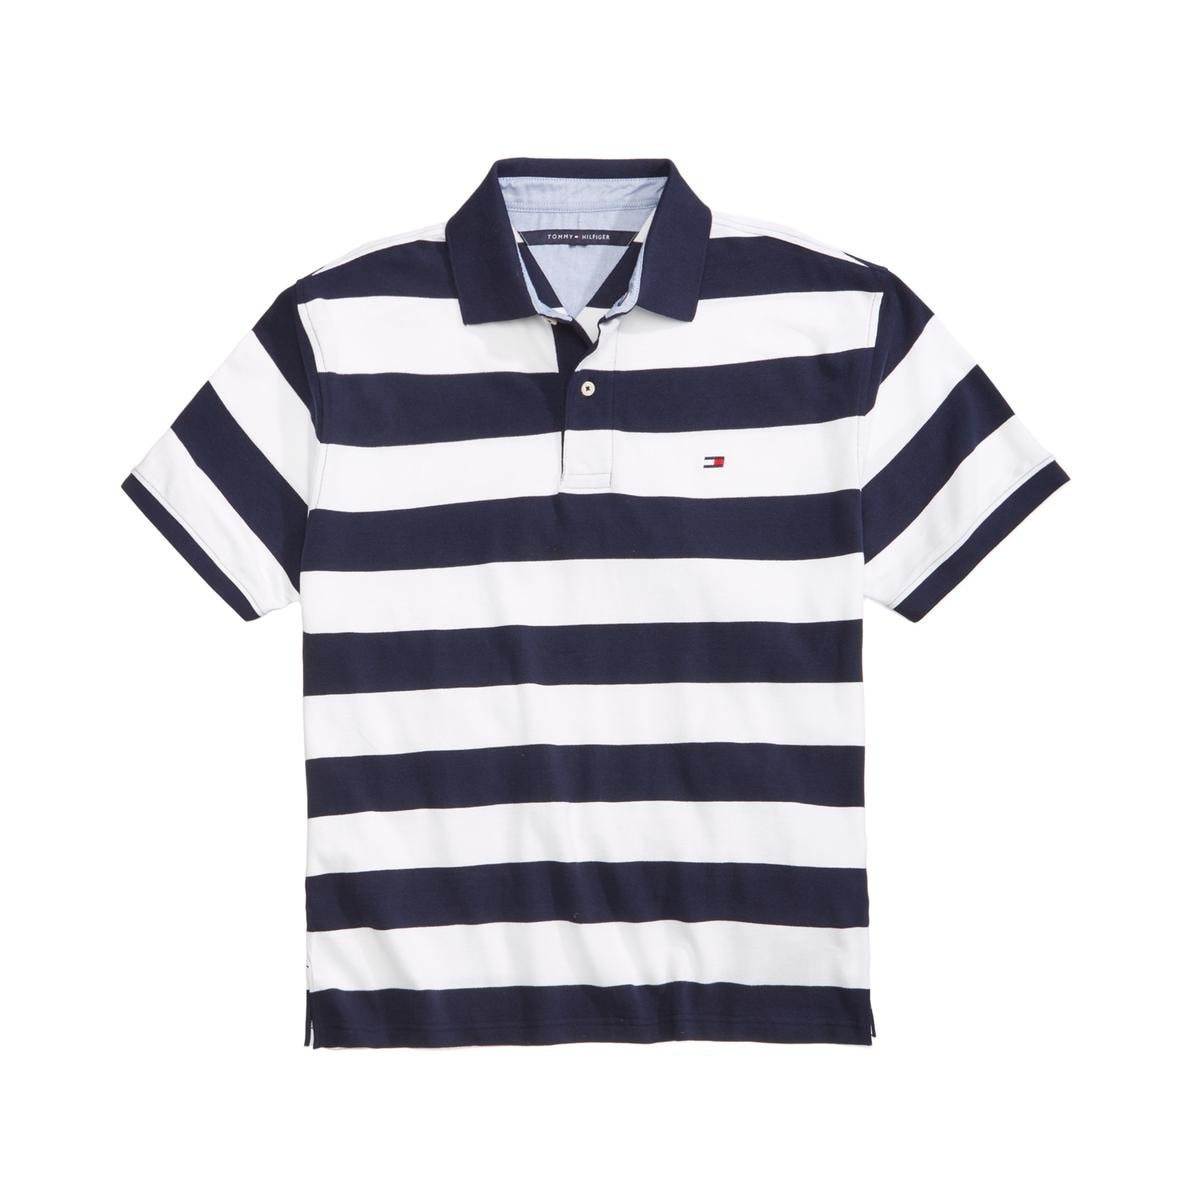 5a1a08f088d Shop Tommy Hilfiger Mens Big   Tall Polo Shirt Striped Blazer - Free  Shipping On Orders Over  45 - Overstock - 22358981